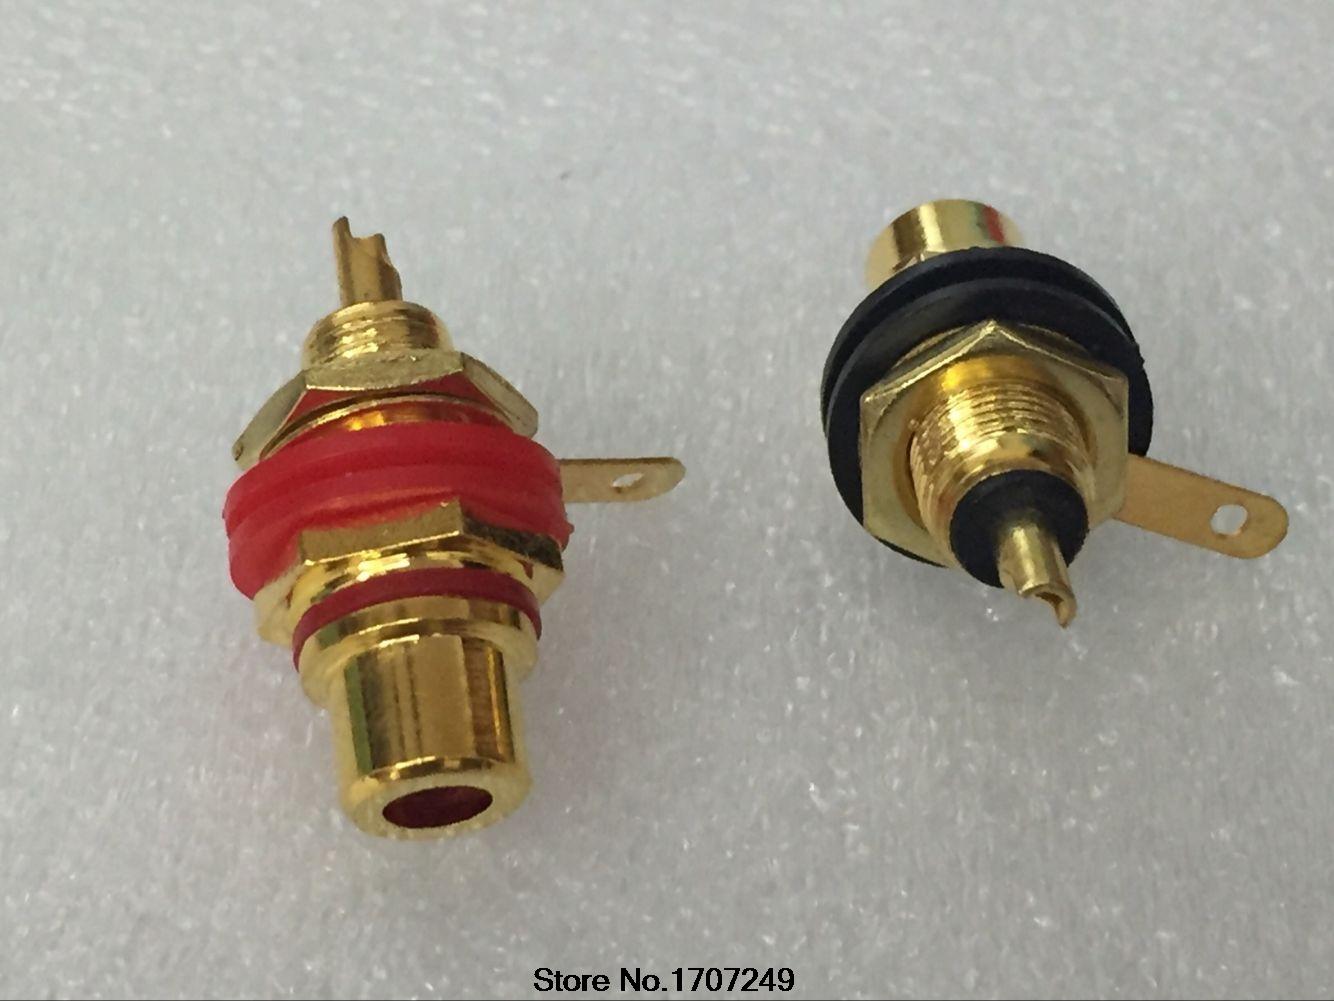 Free Shipping 100PCS Gold Plated RCA Terminal Jack Female Socket Chassis Panel Connector for Amplifier Speaker